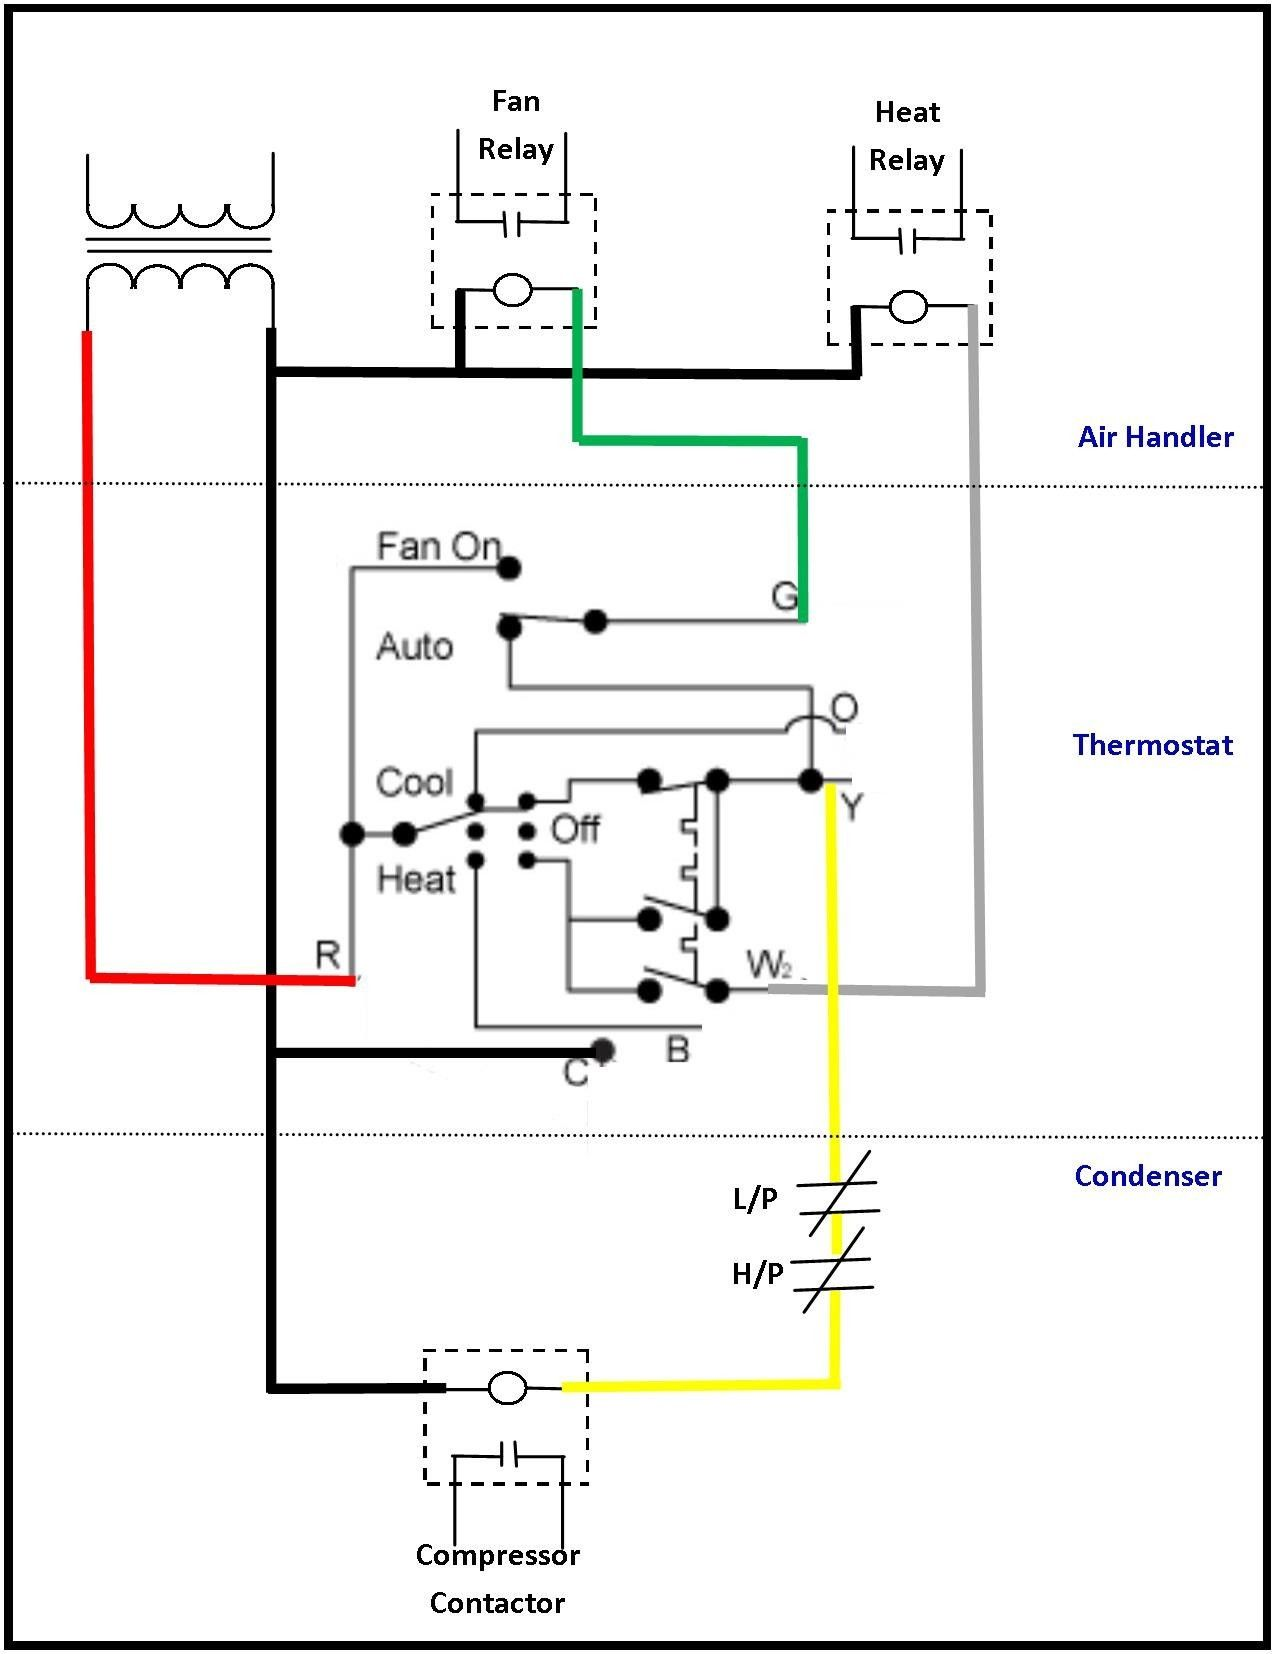 70 Unique Furnace Fan Relay Wiring Diagram | Thermostat wiring, Ac wiring,  Electrical circuit diagram | Hvac Relay Wiring Diagram |  | Pinterest